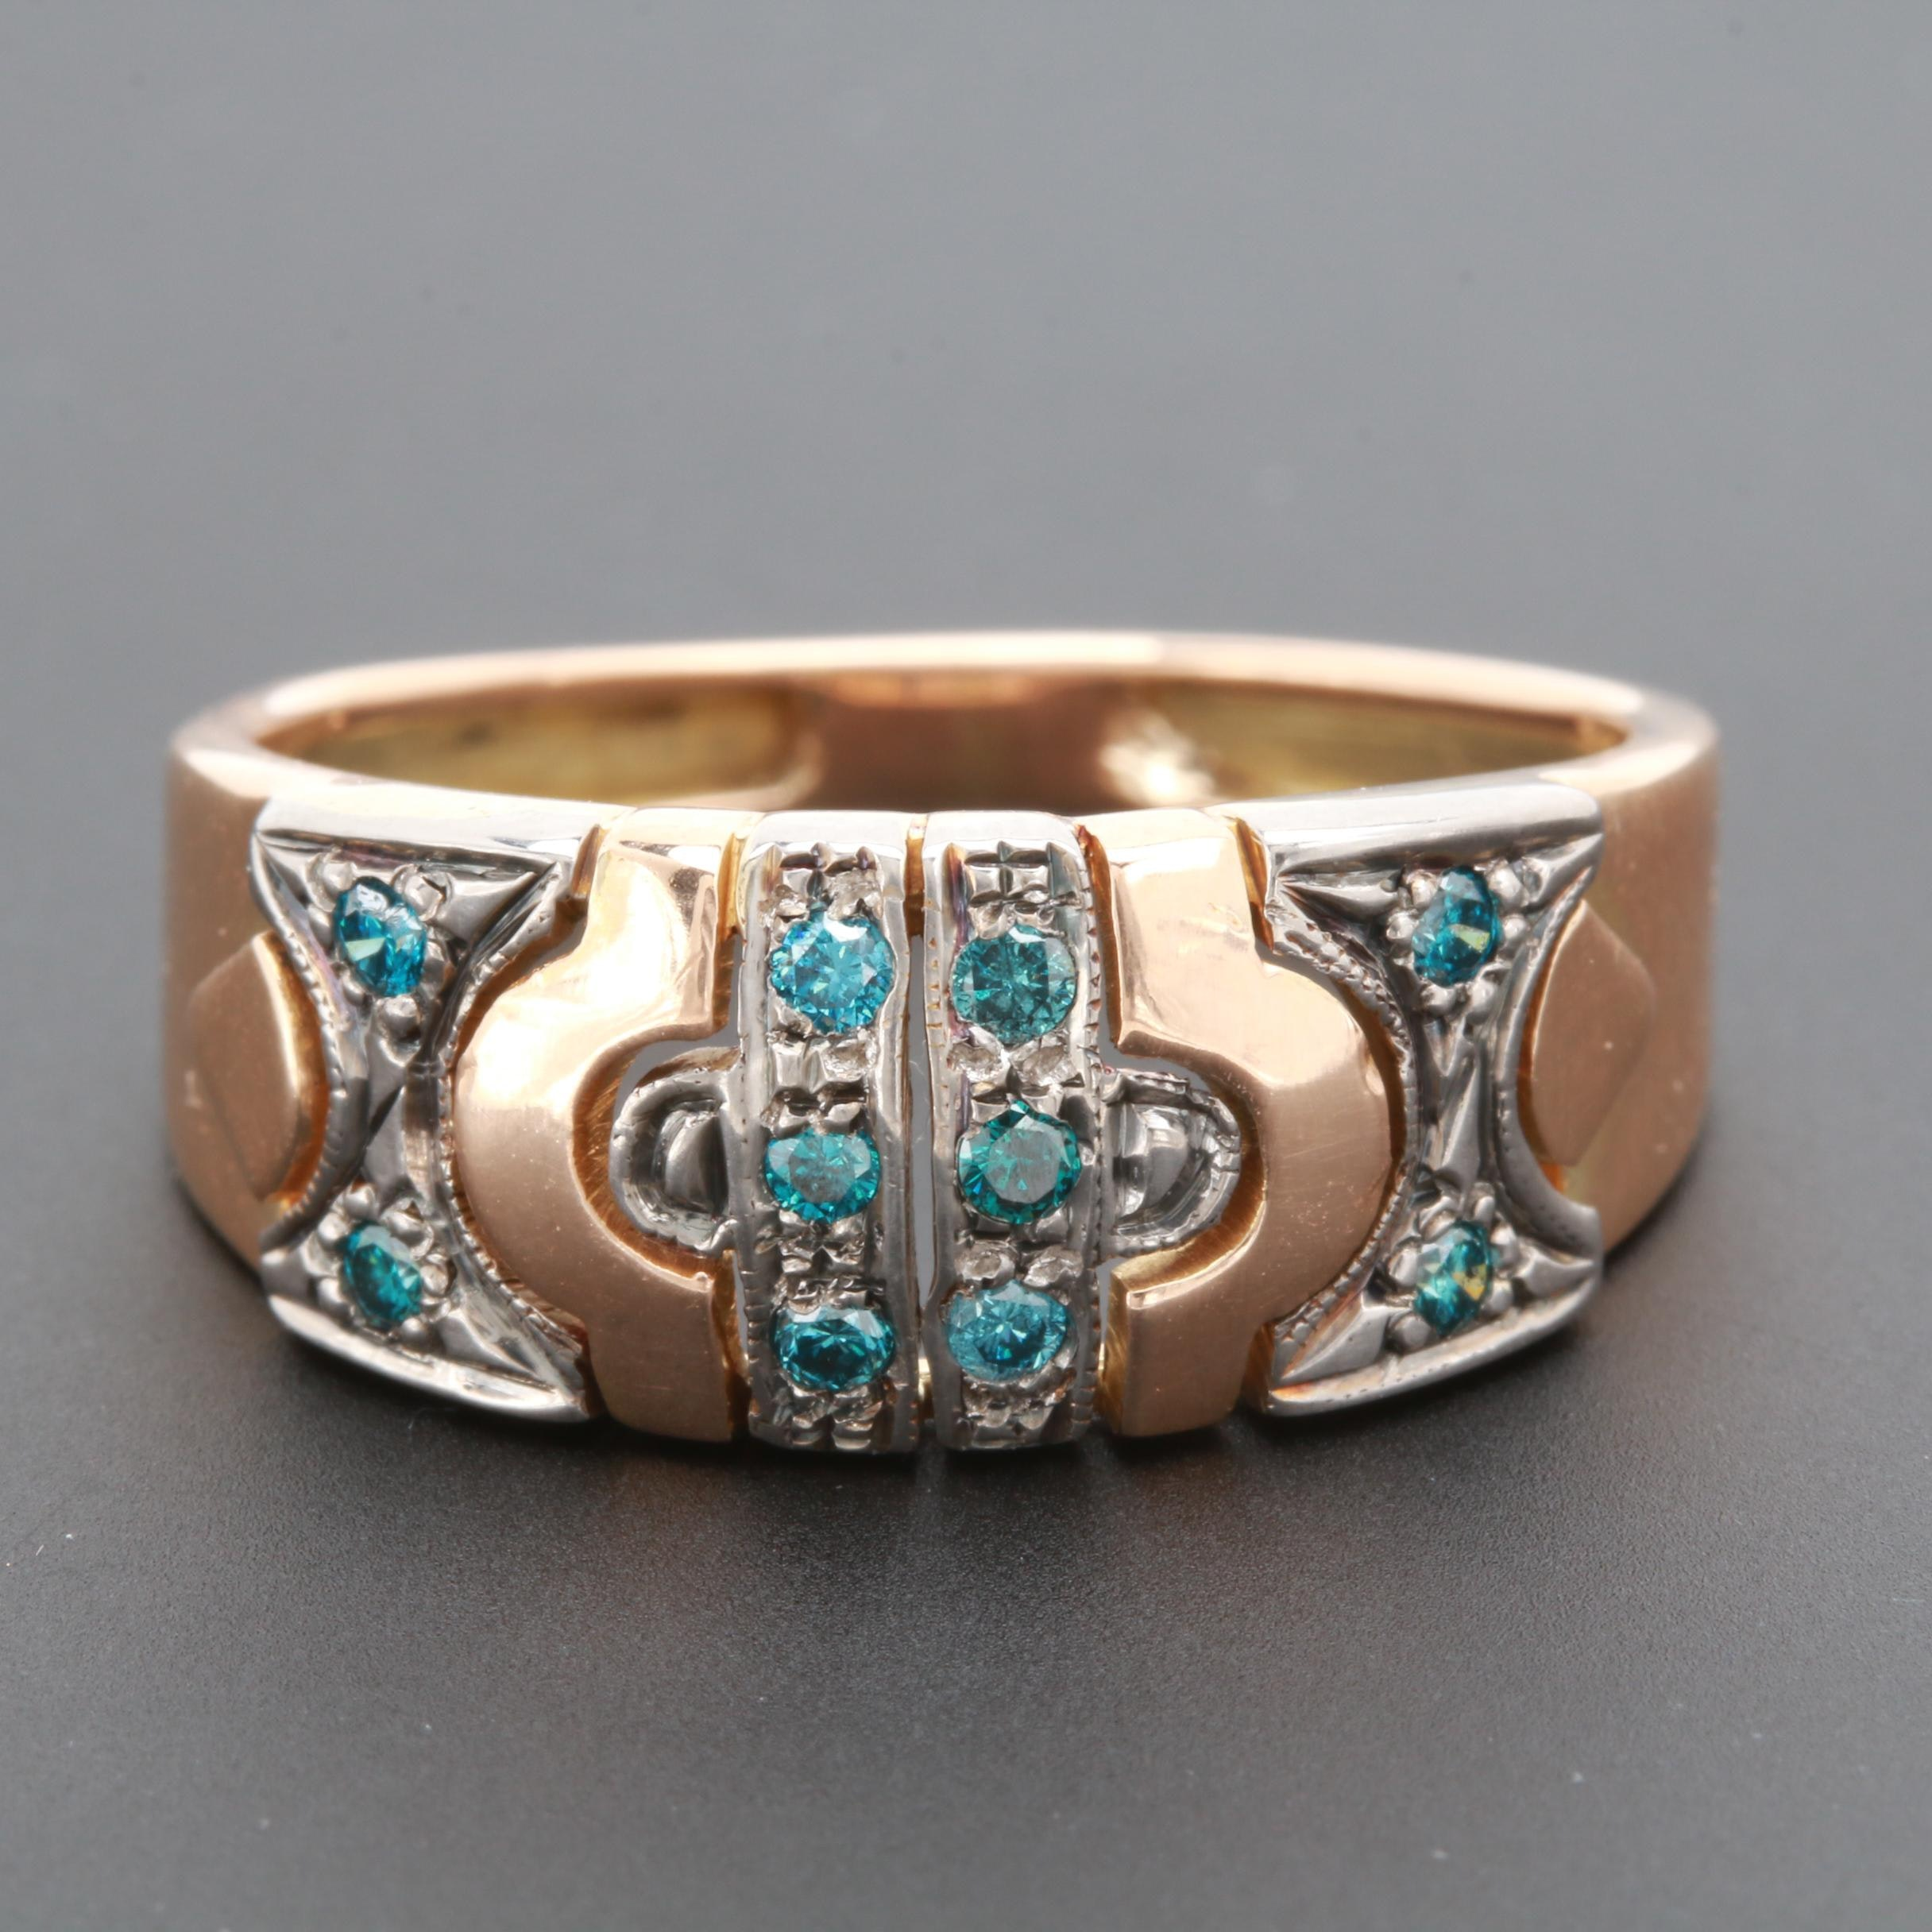 18K Yellow Gold Blue Diamond Ring with Silver Palladium Alloy Accents